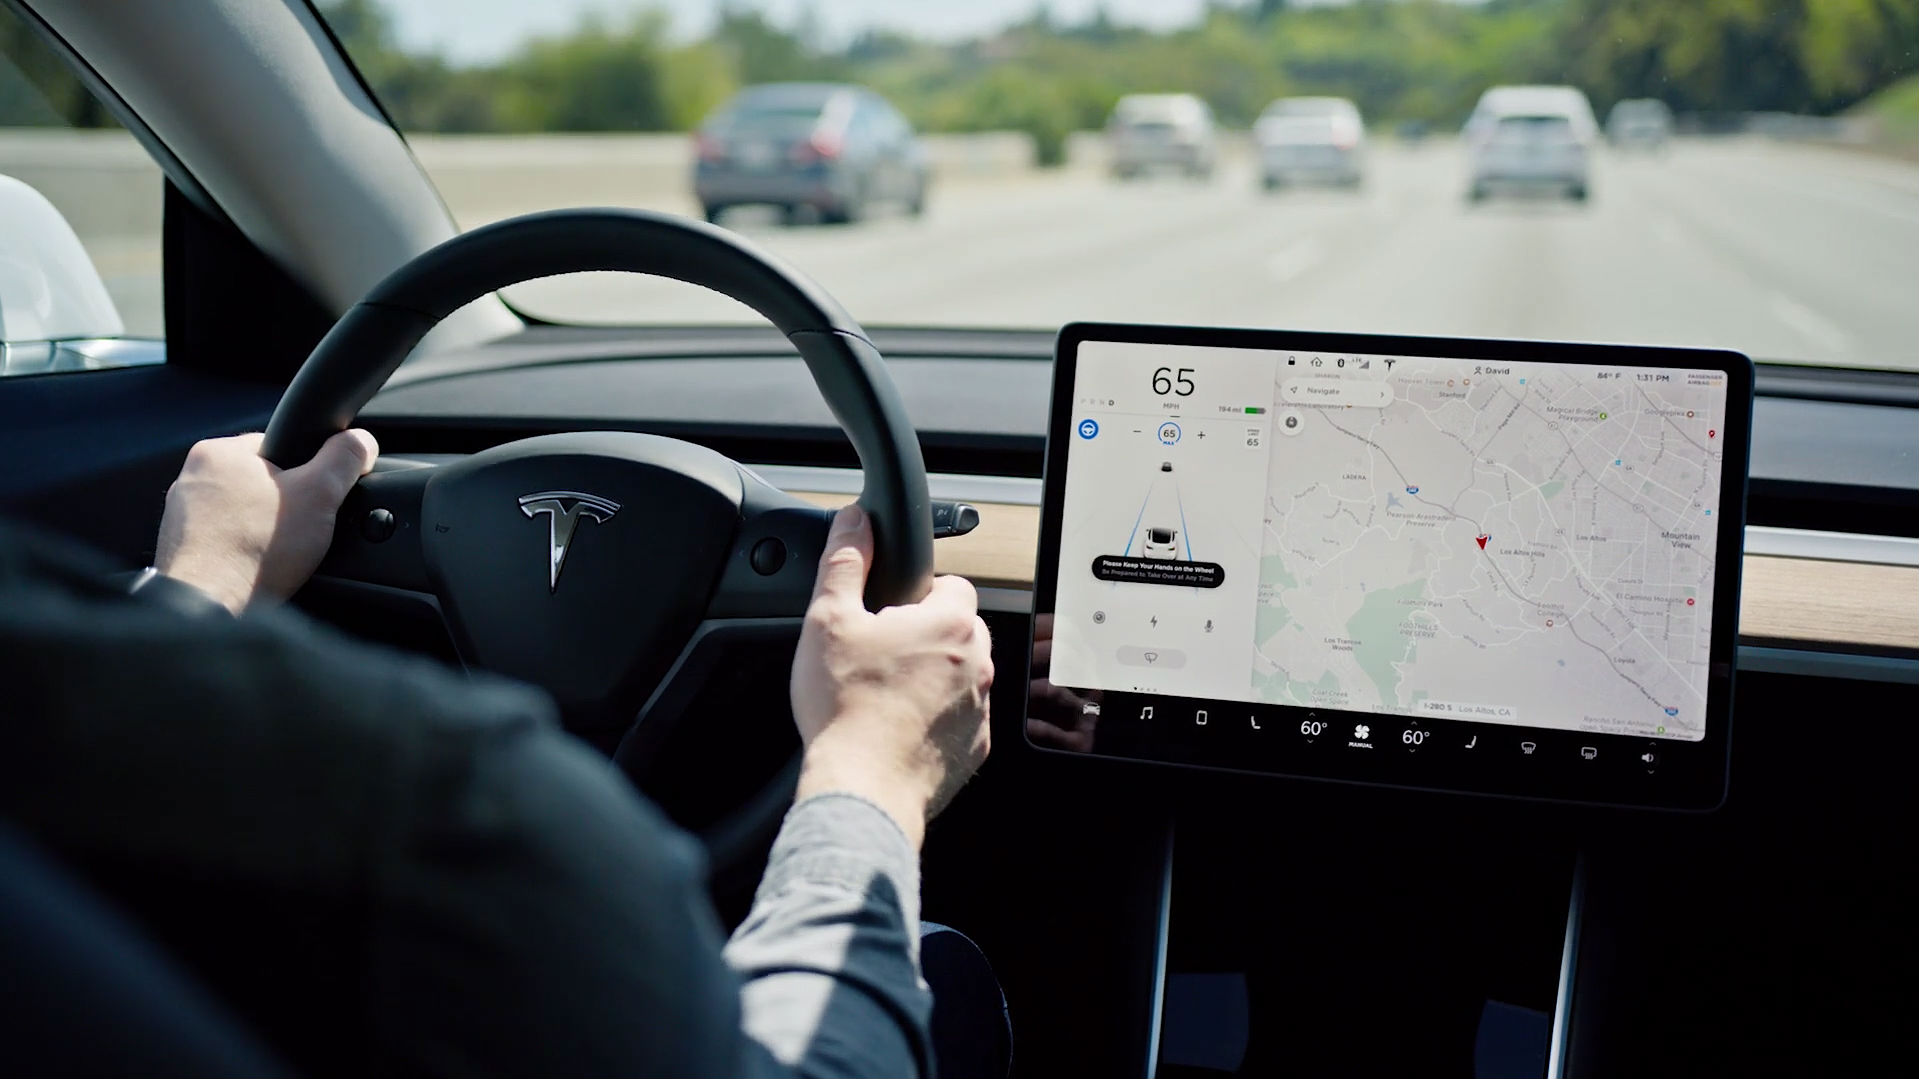 Tesla to host Autonomy Investor Day on April 22